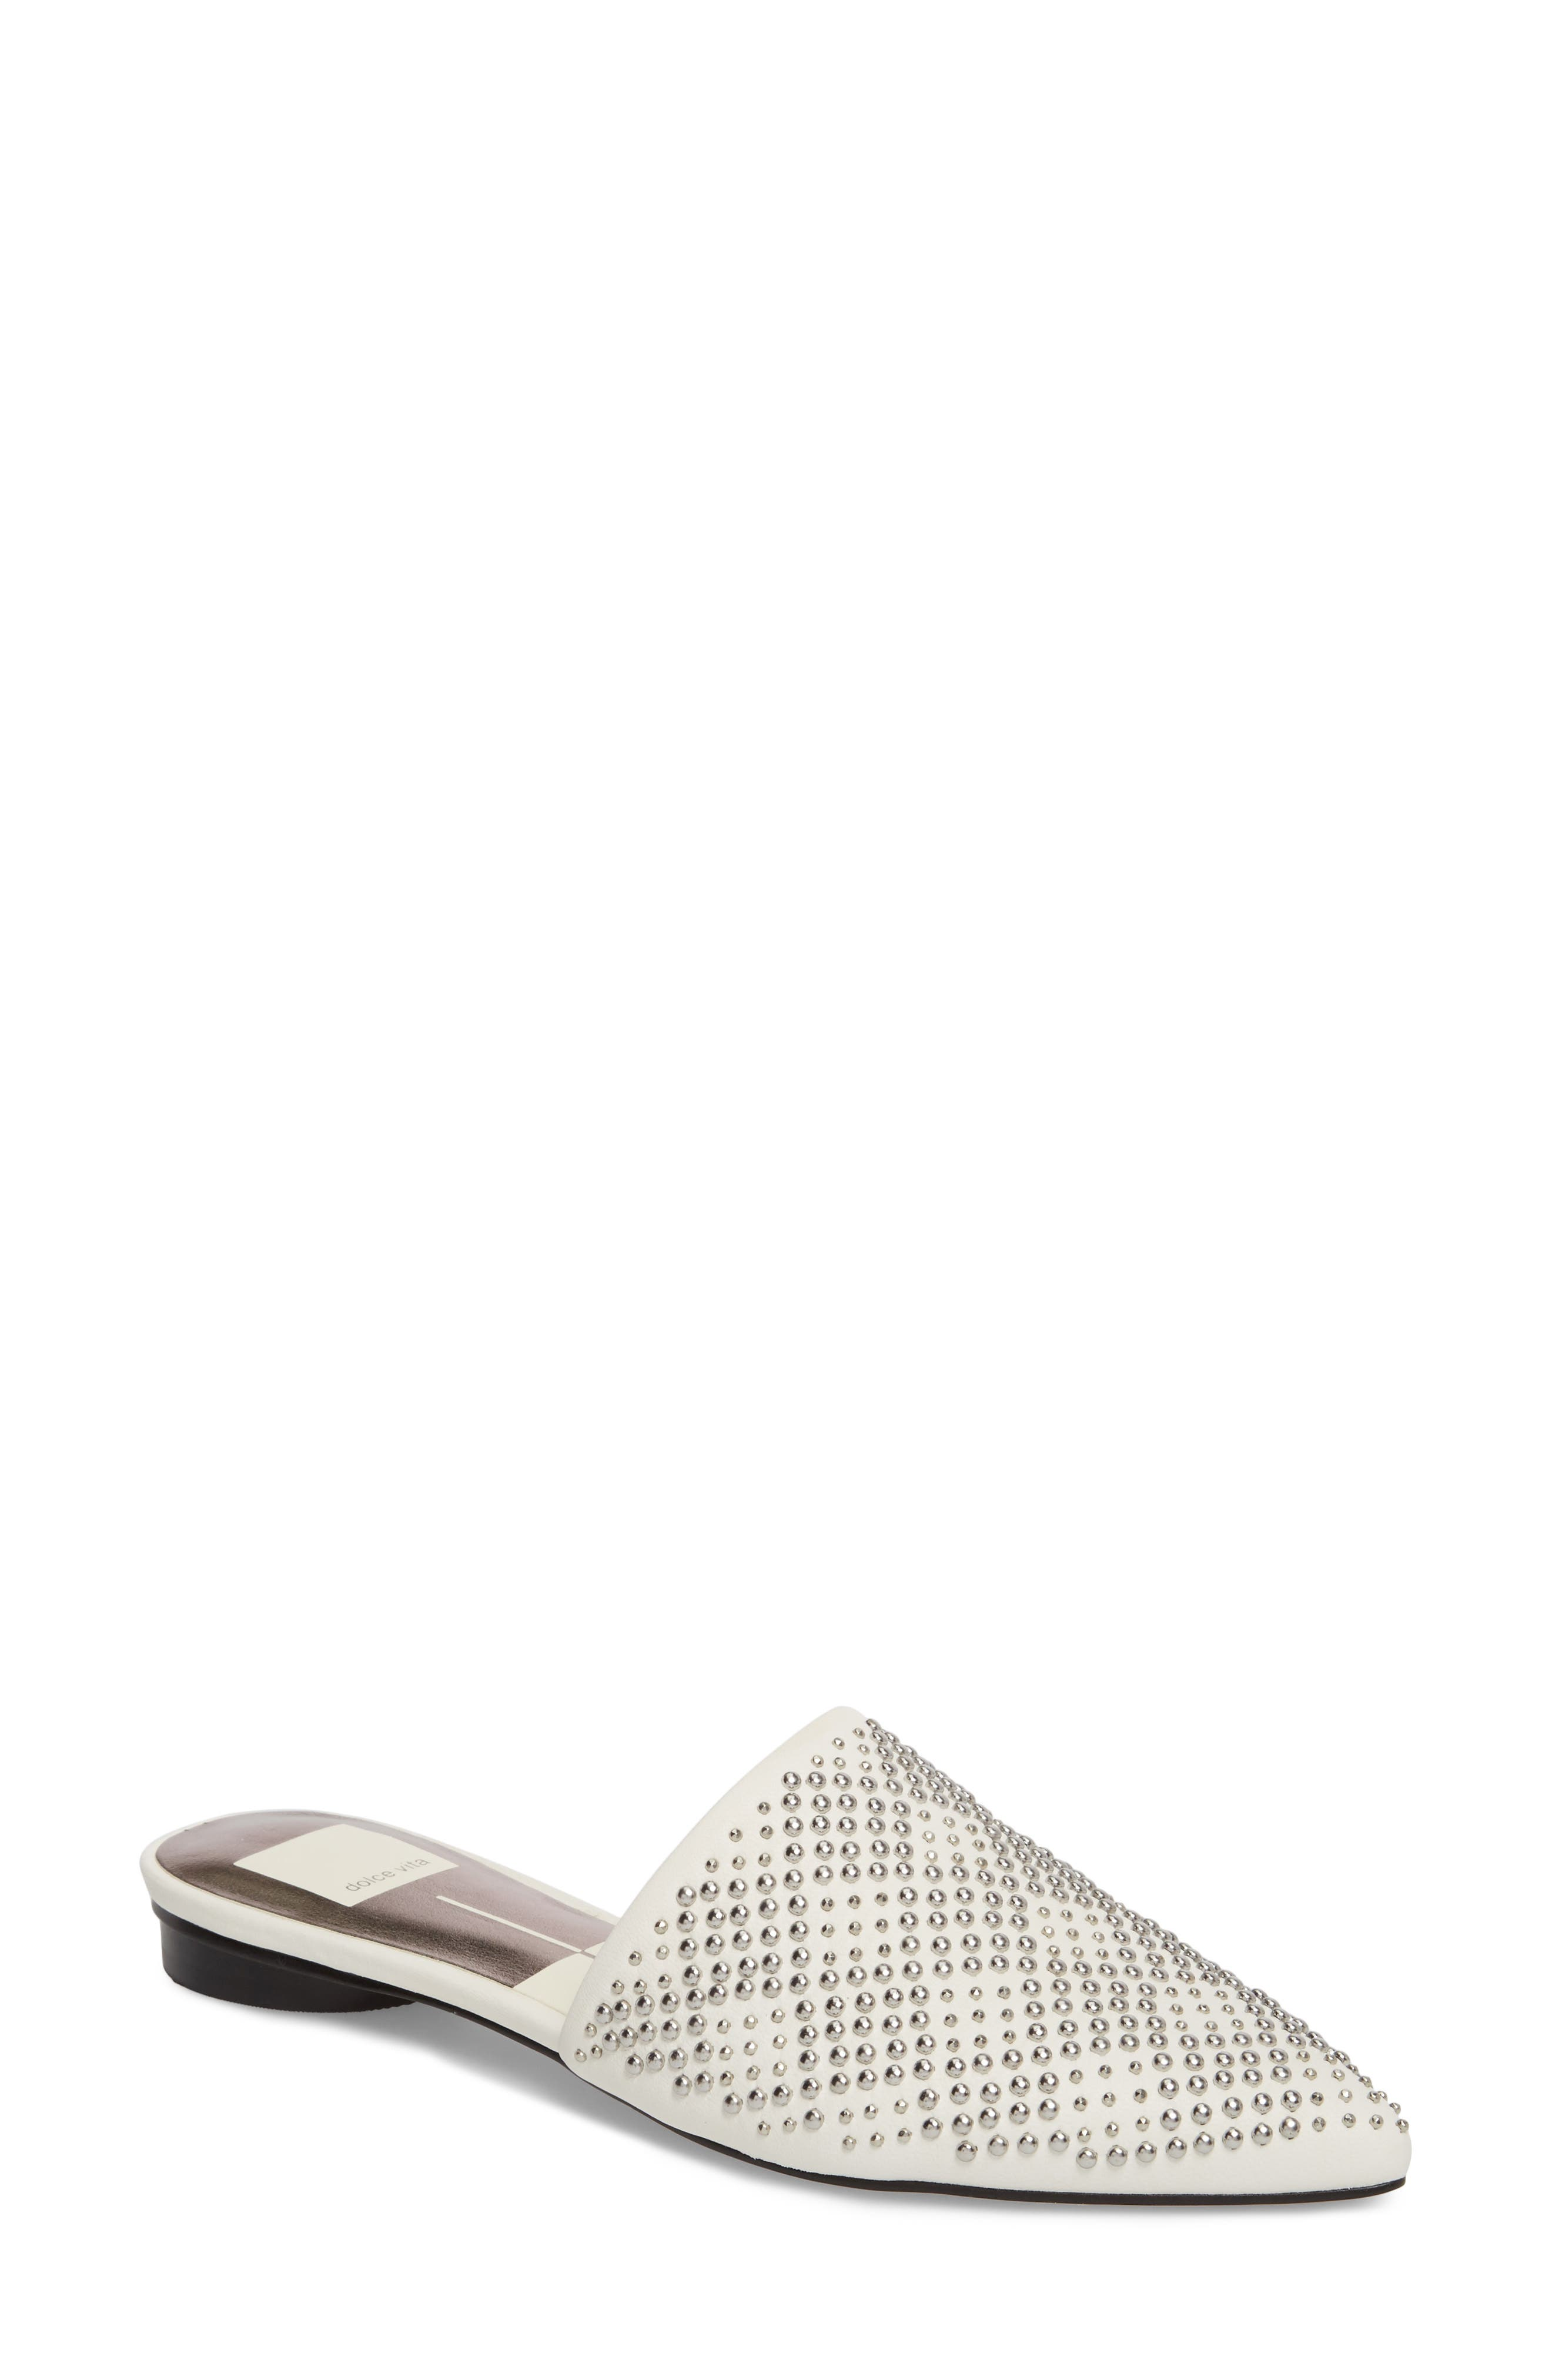 Elvah Studded Mule,                             Main thumbnail 1, color,                             OFF WHITE LEATHER STUDS